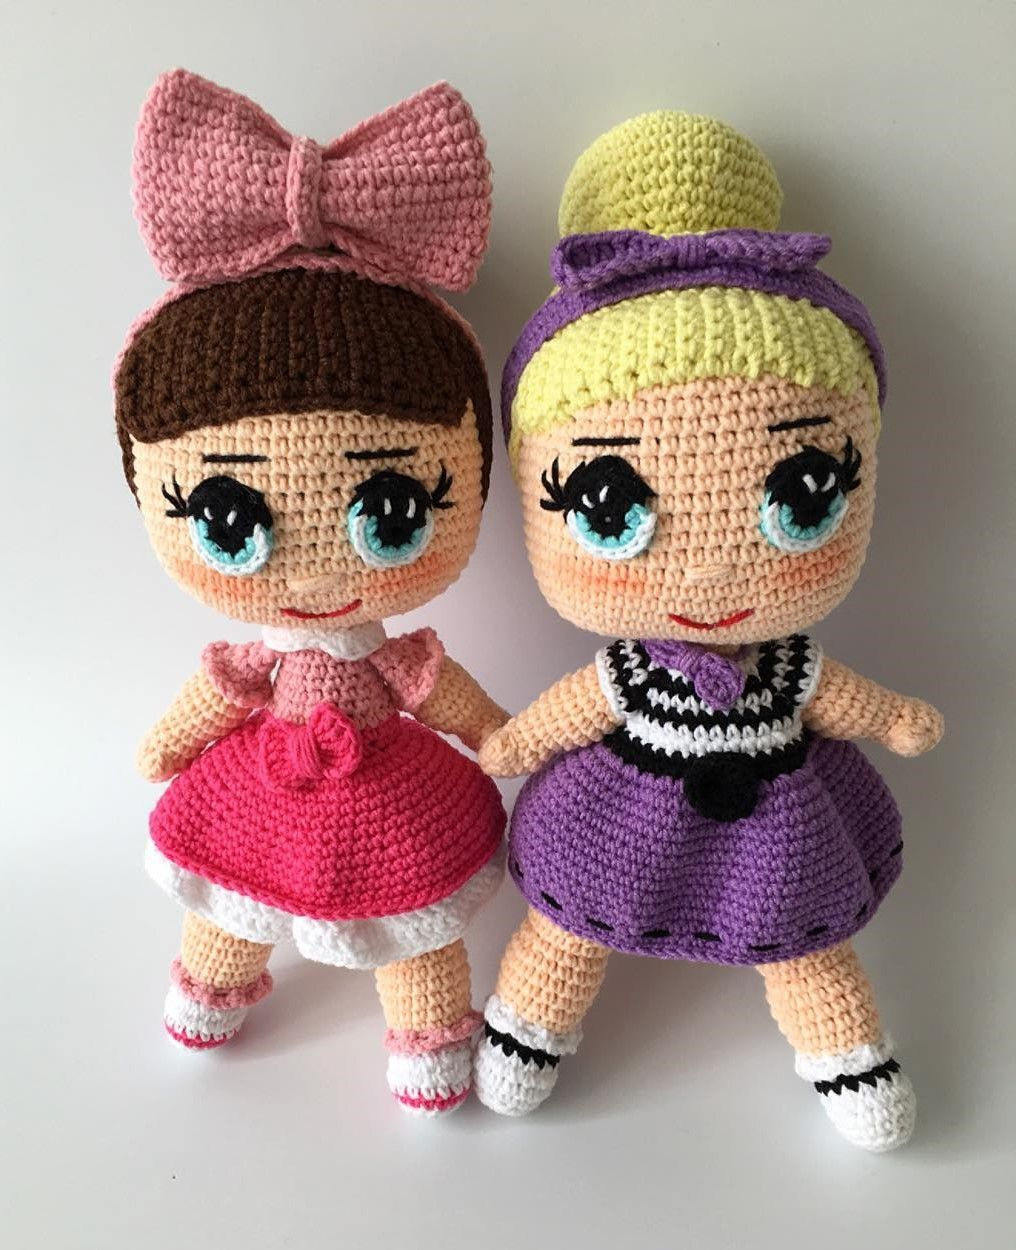 Crochet Doll - Free Tutorial & Pattern (With images) | Crochet ... | 1250x1016